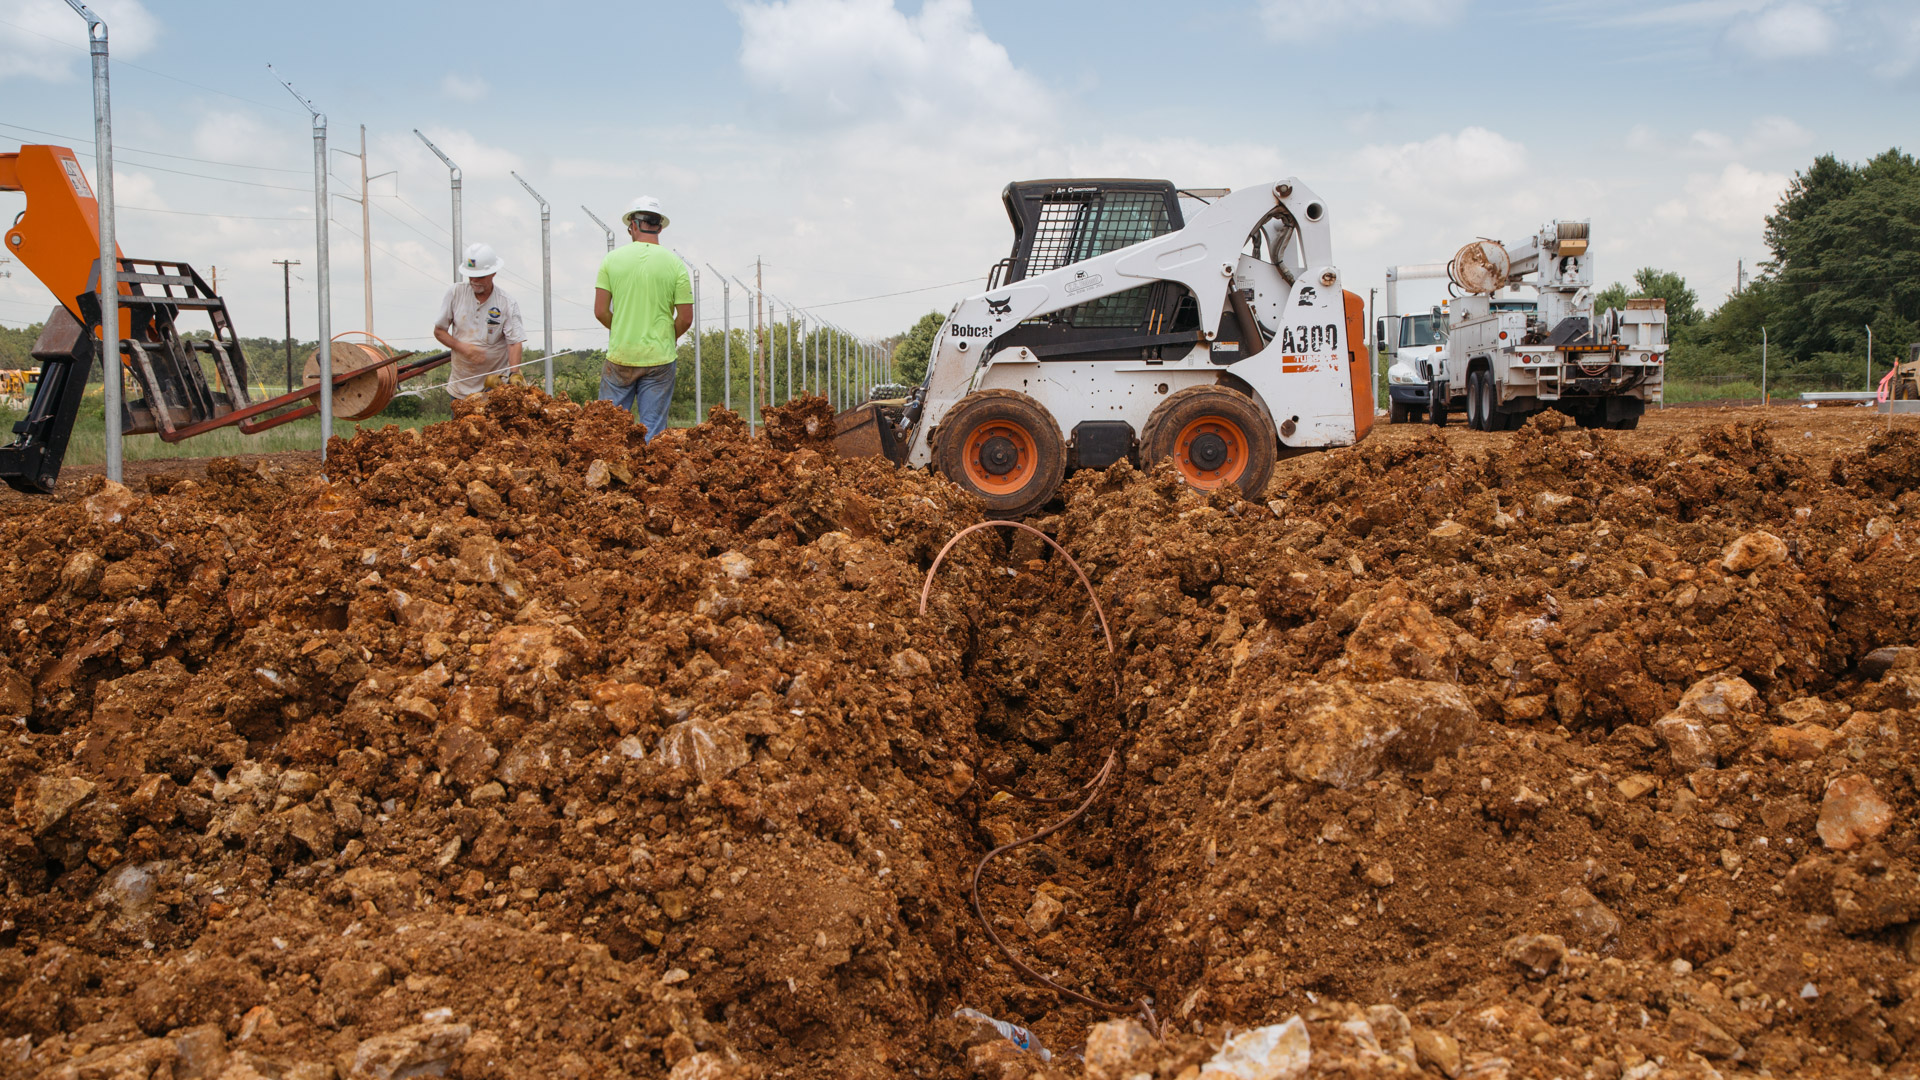 Image of small bulldozer moving dirt during the beginning stages of Empire Substation construction in Joplin, MO.